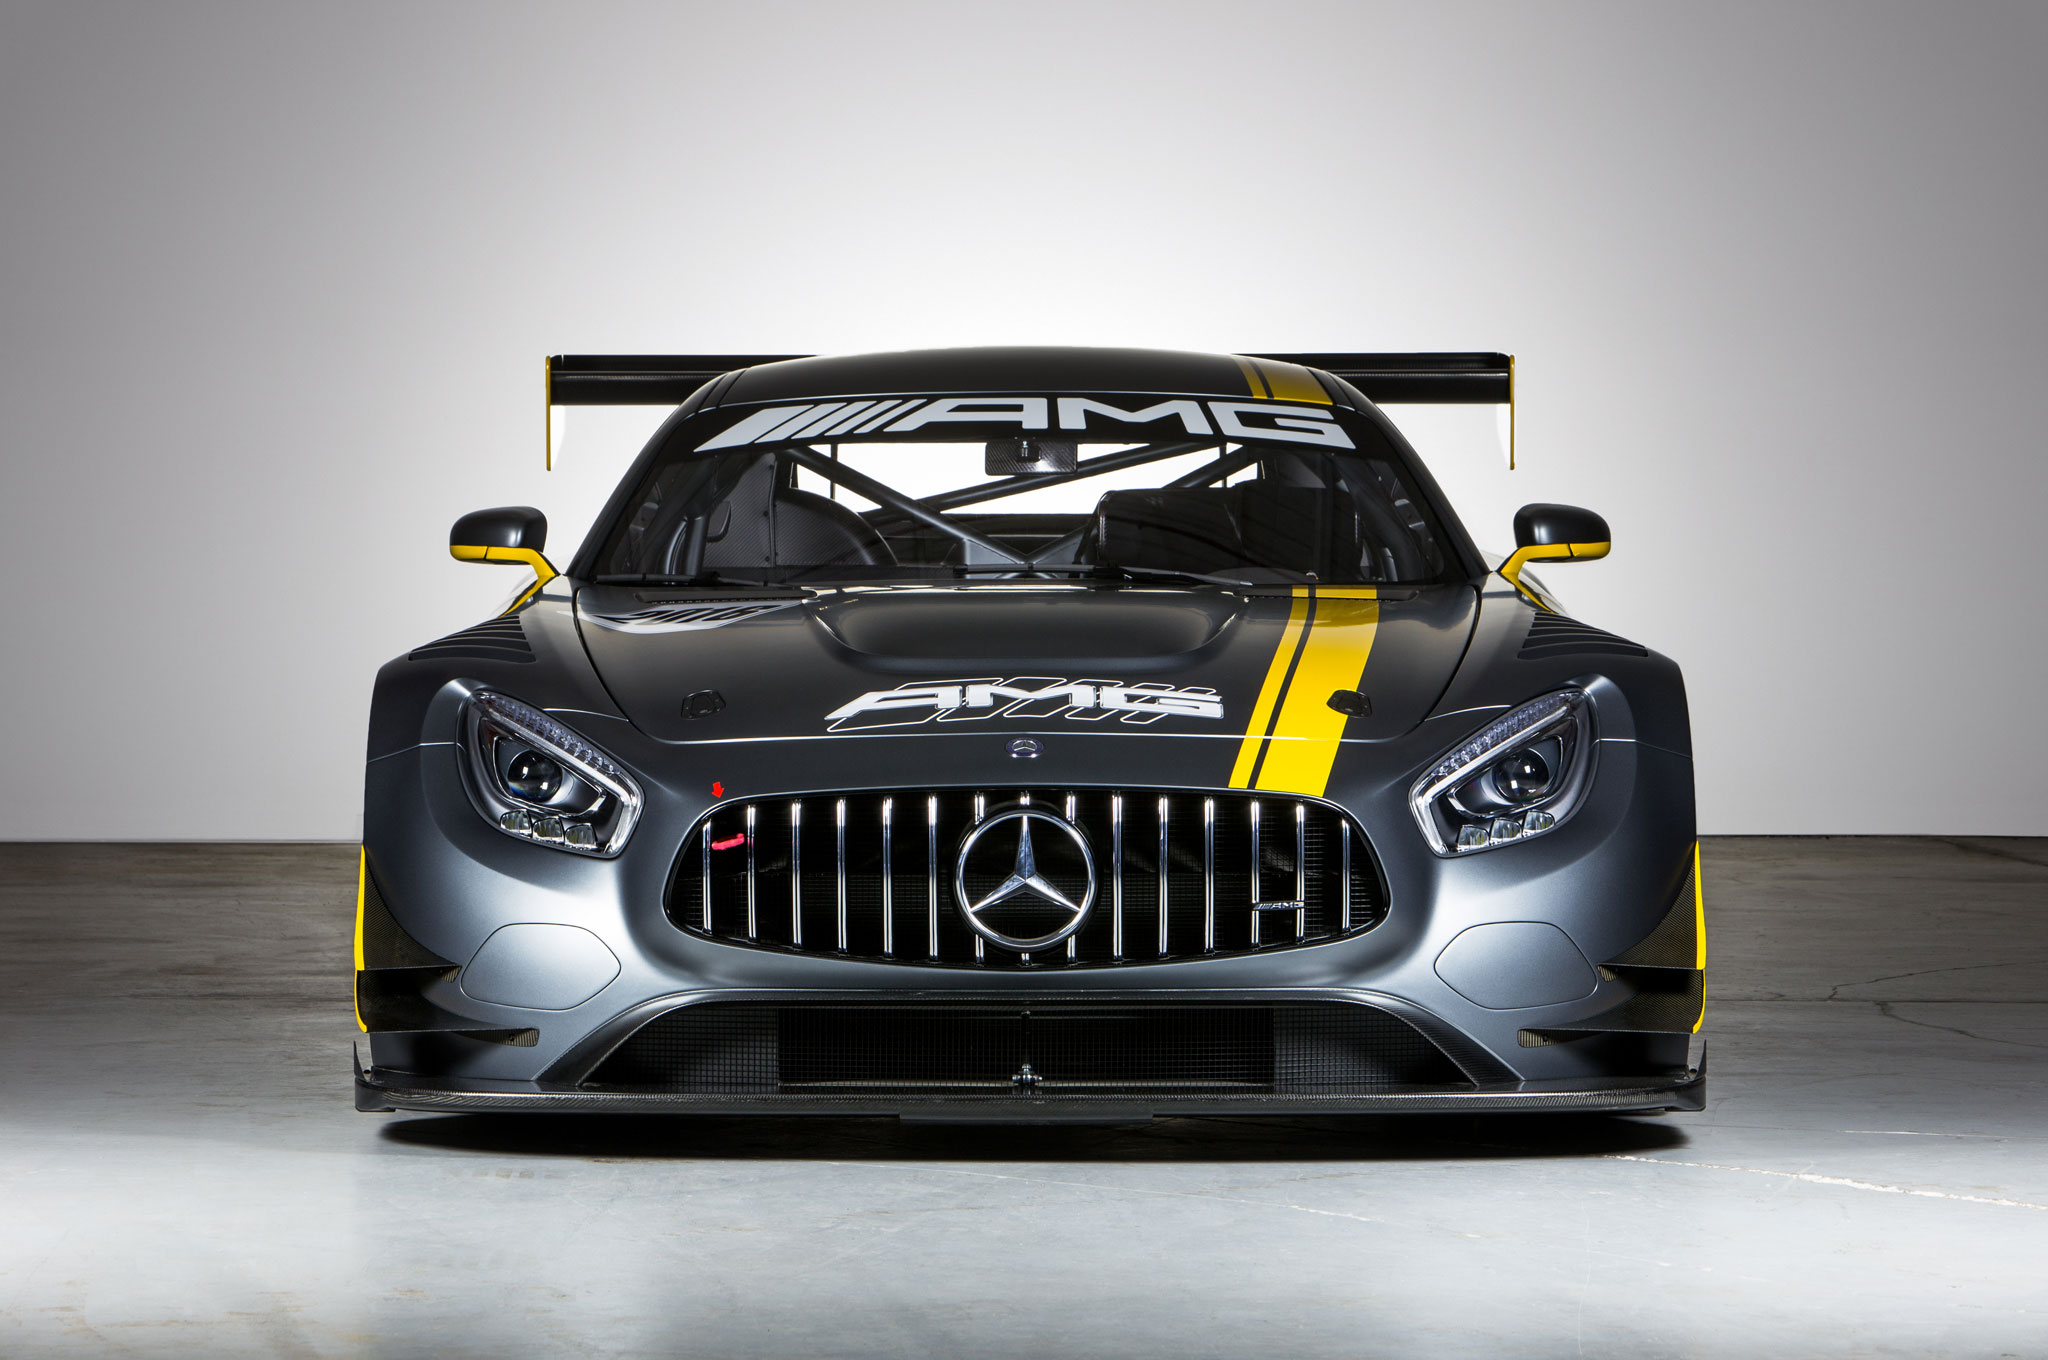 Mercedes amg cigarette racing reveal gt3 inspired boat in for Mercedes benz race car